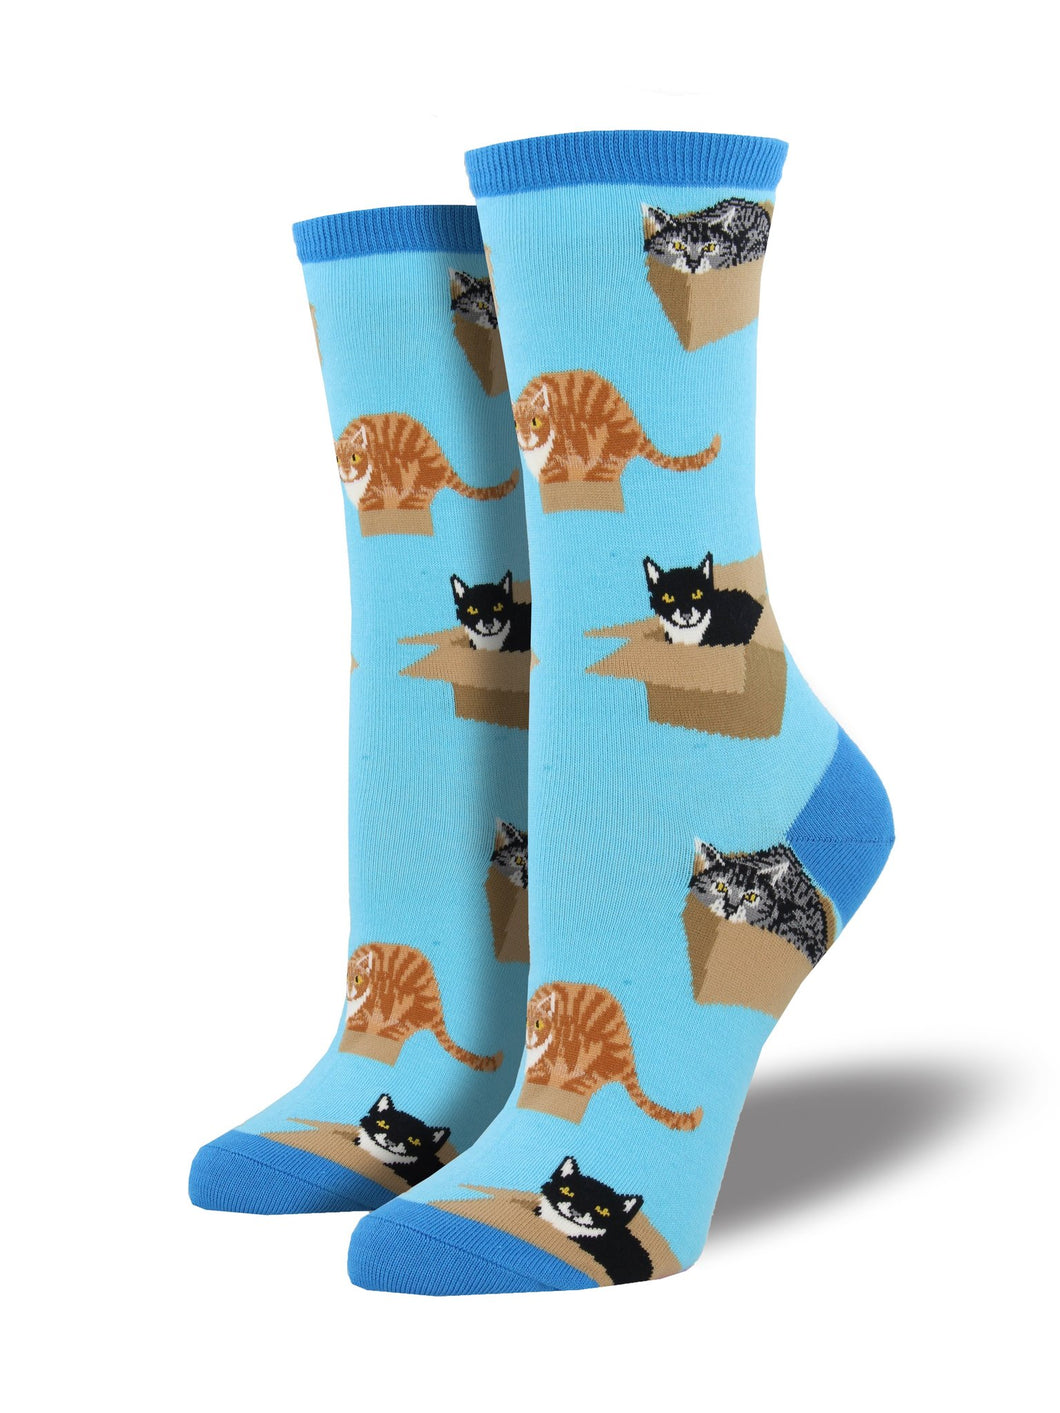 Socksmith 'Cat In A Box' Azure Womens Socks